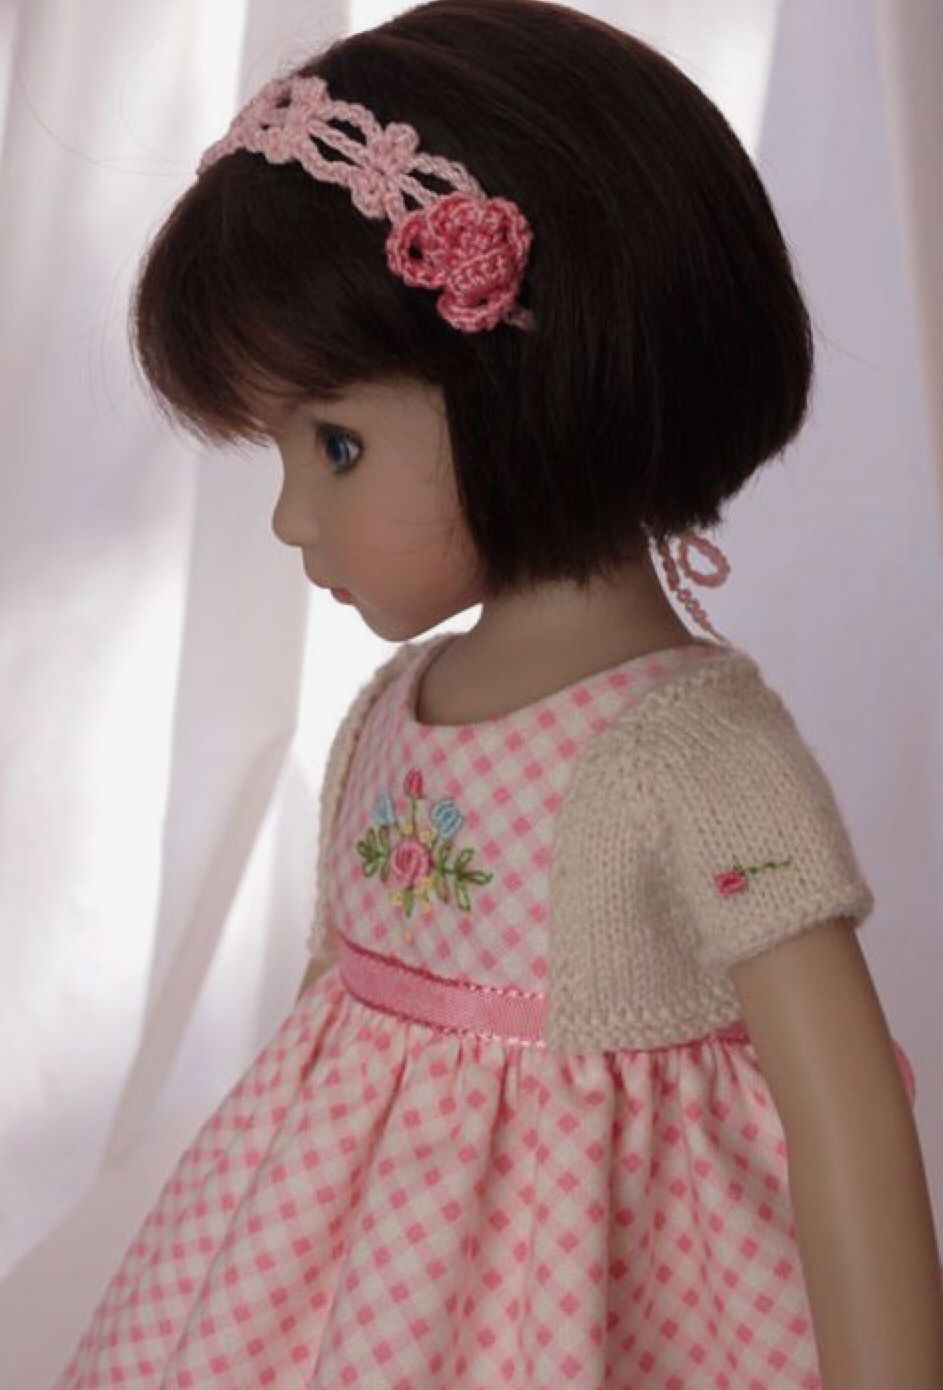 Dress for dolls | costura niños | Pinterest | Lebensechte puppen ...